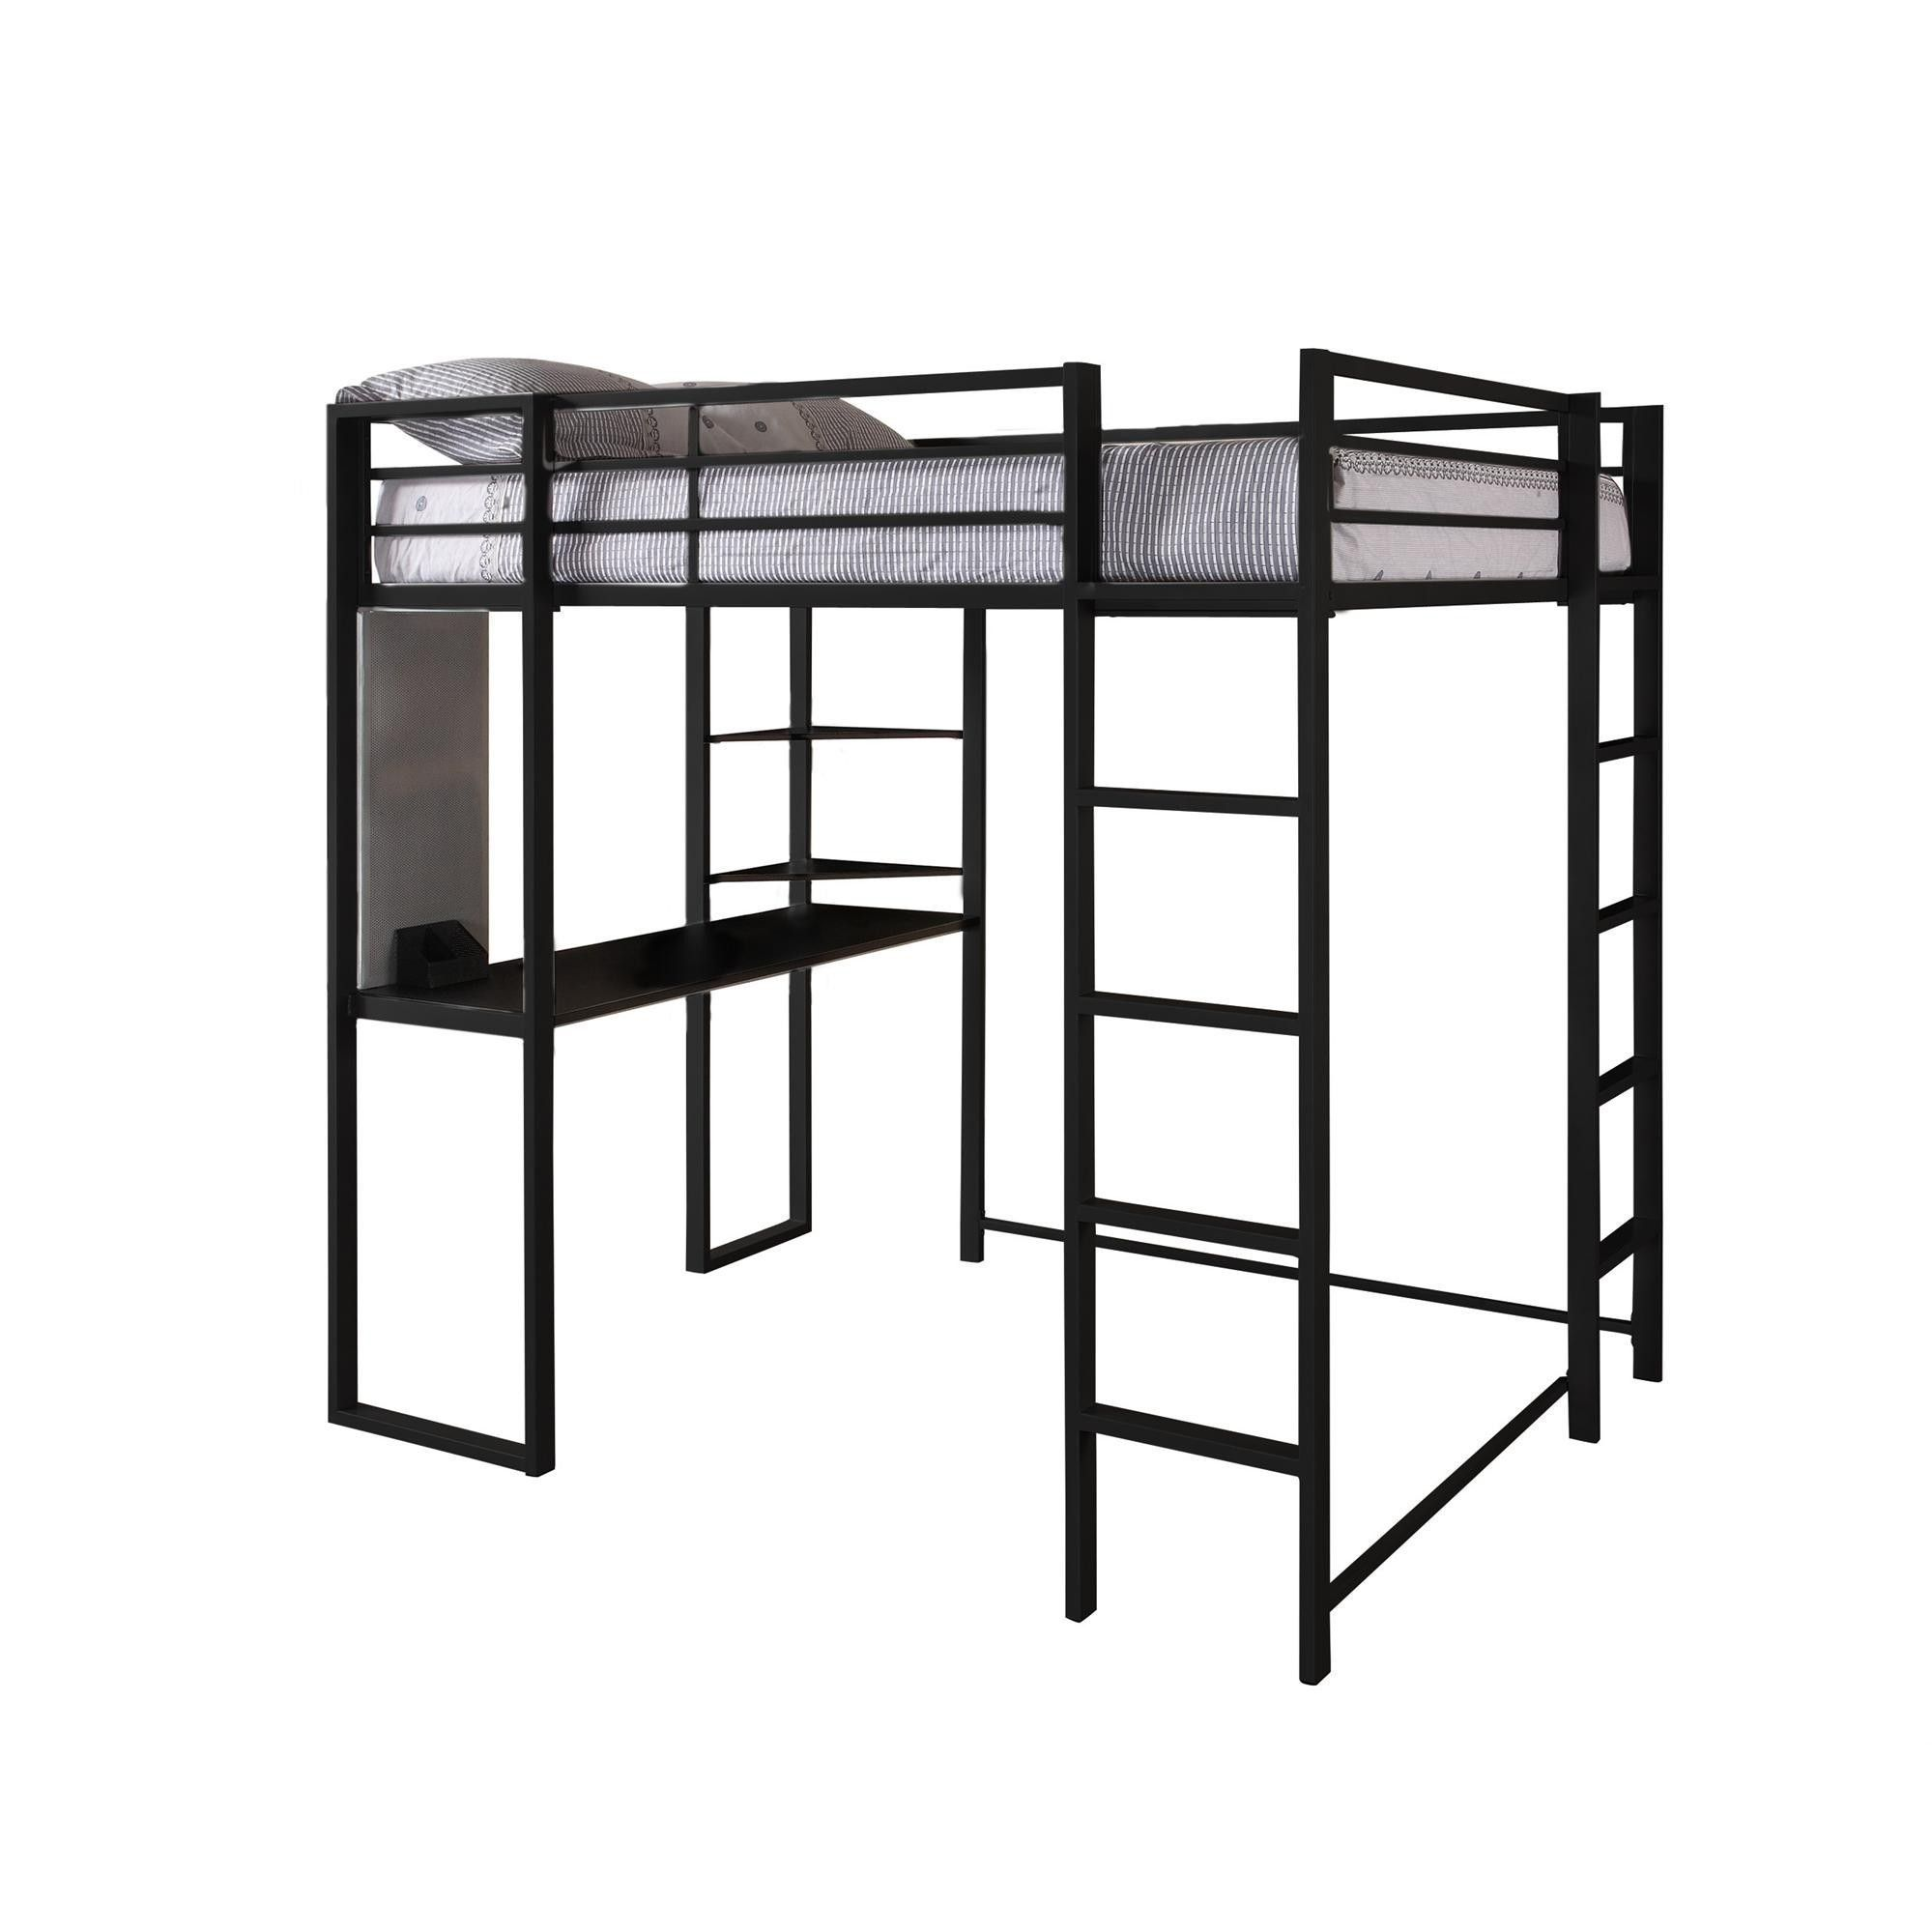 Metal loft bed ideas  DHP Abode Full Size Metal Loft Bed Abode Full Size Loft Bed Black